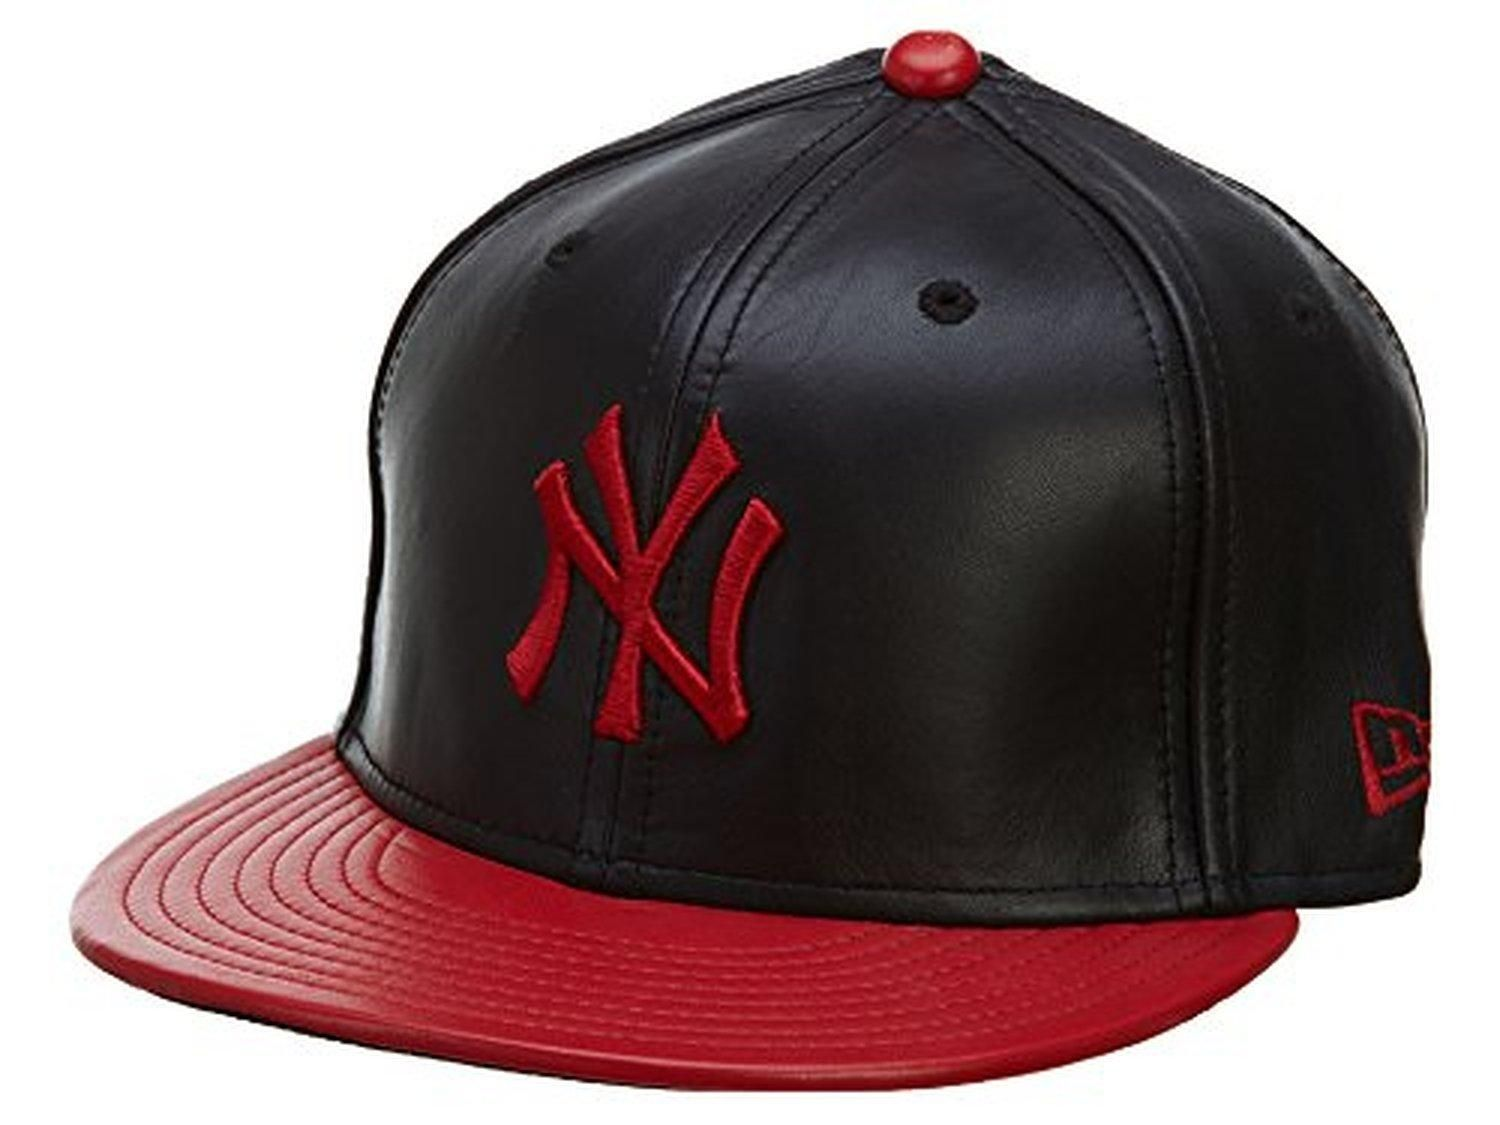 New Era New York Yankees Mlb Leather 59fifty Cap Black Scarlet Size 8 Yankees Fitted Hat New York Yankees Yankee Fitted